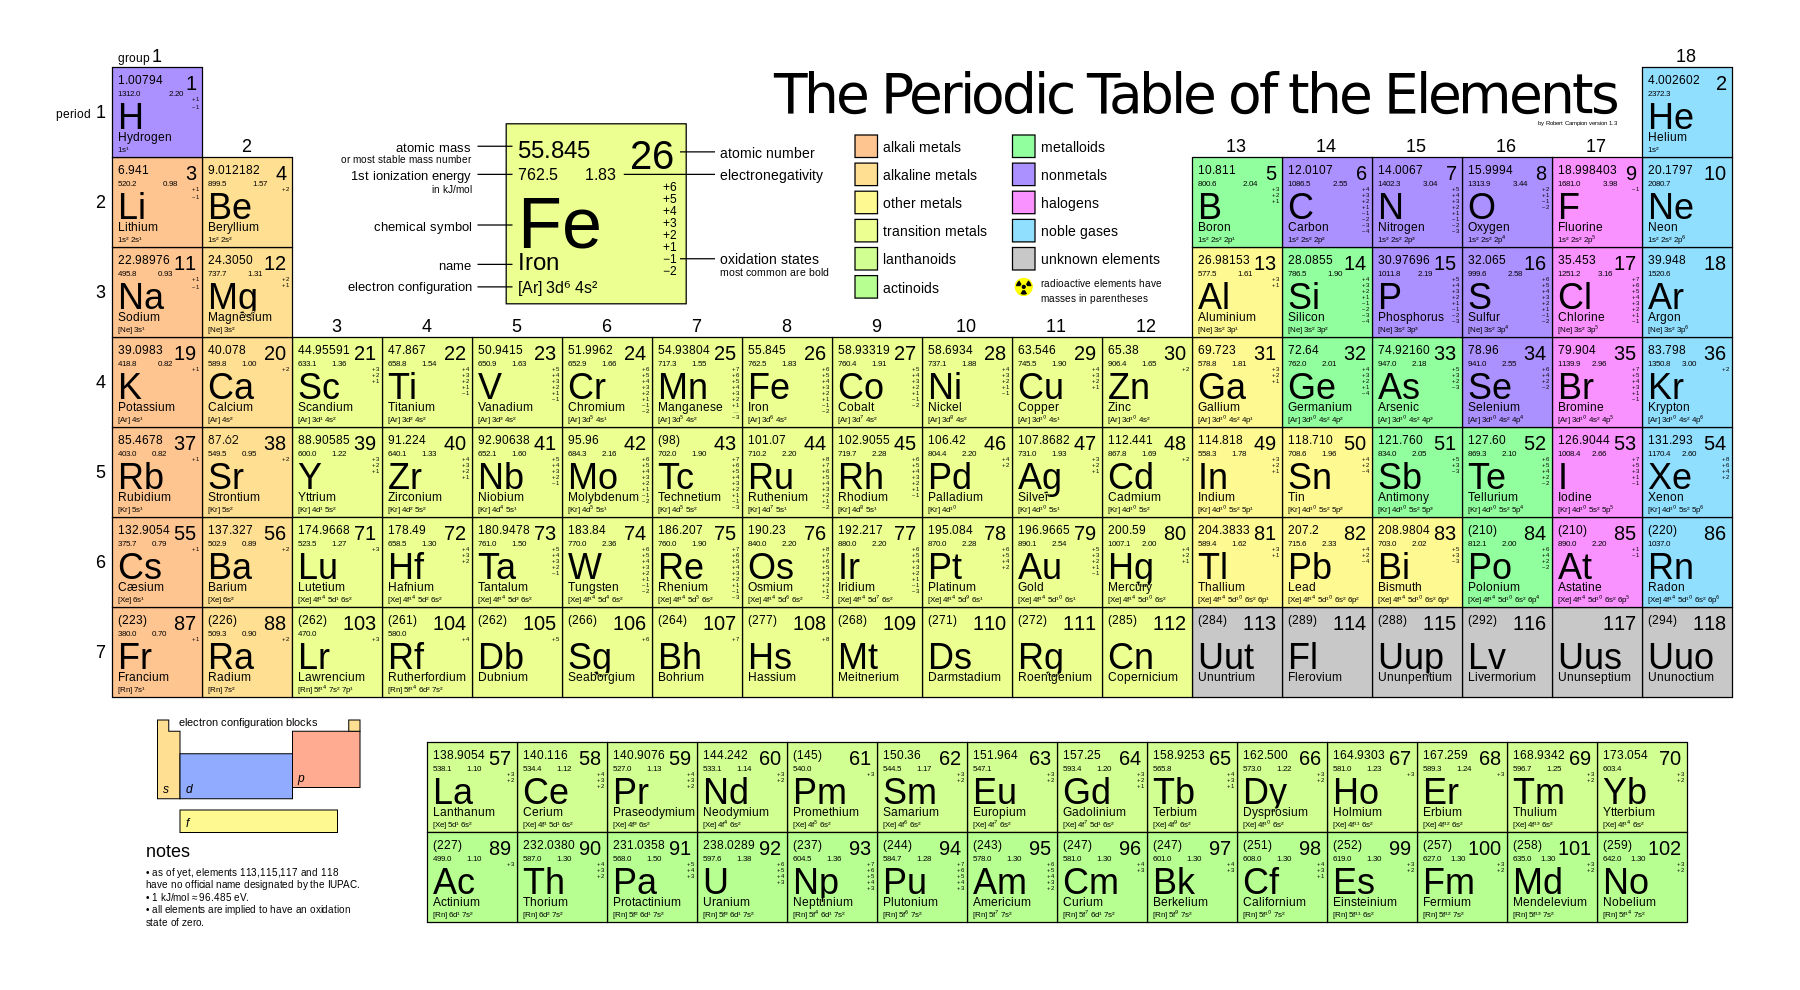 A study on the element lawrencium college paper service sepapereqbn a study on the element lawrencium this lookup displays all the elements in the periodic table urtaz Images